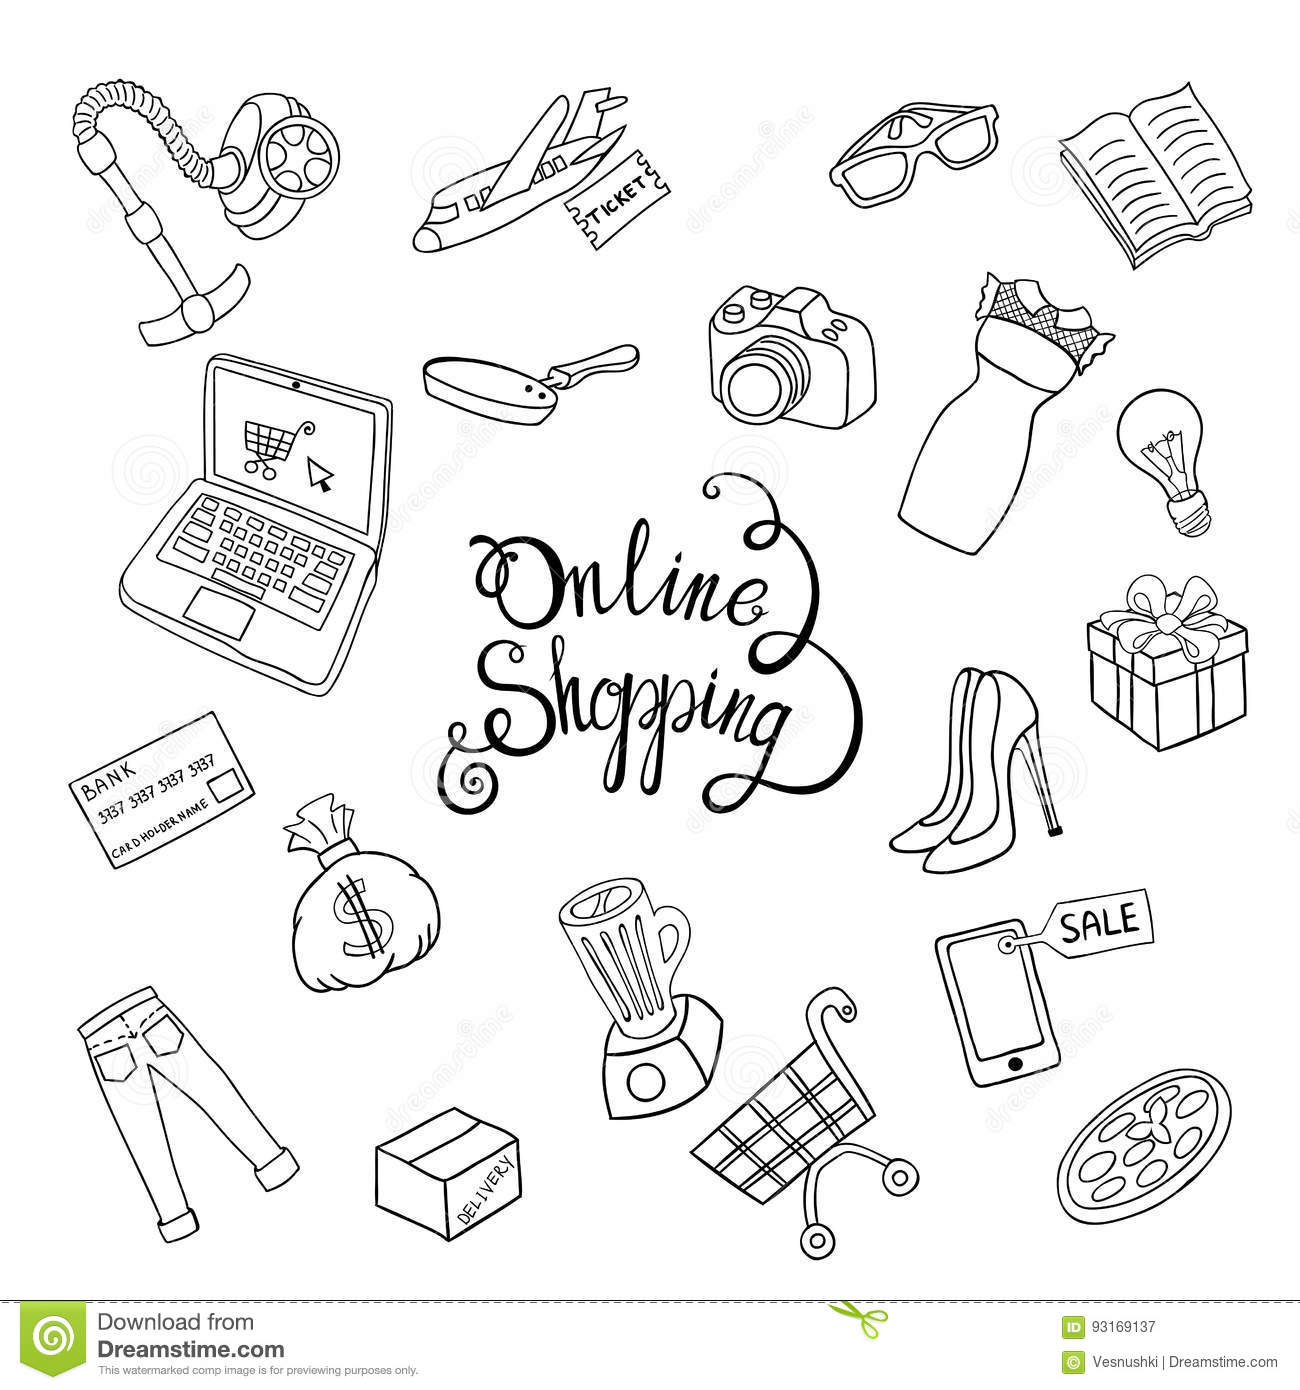 sketch diagram online e34 wiring vector hand draw concept shopping stock set of cartoon object on the illustration